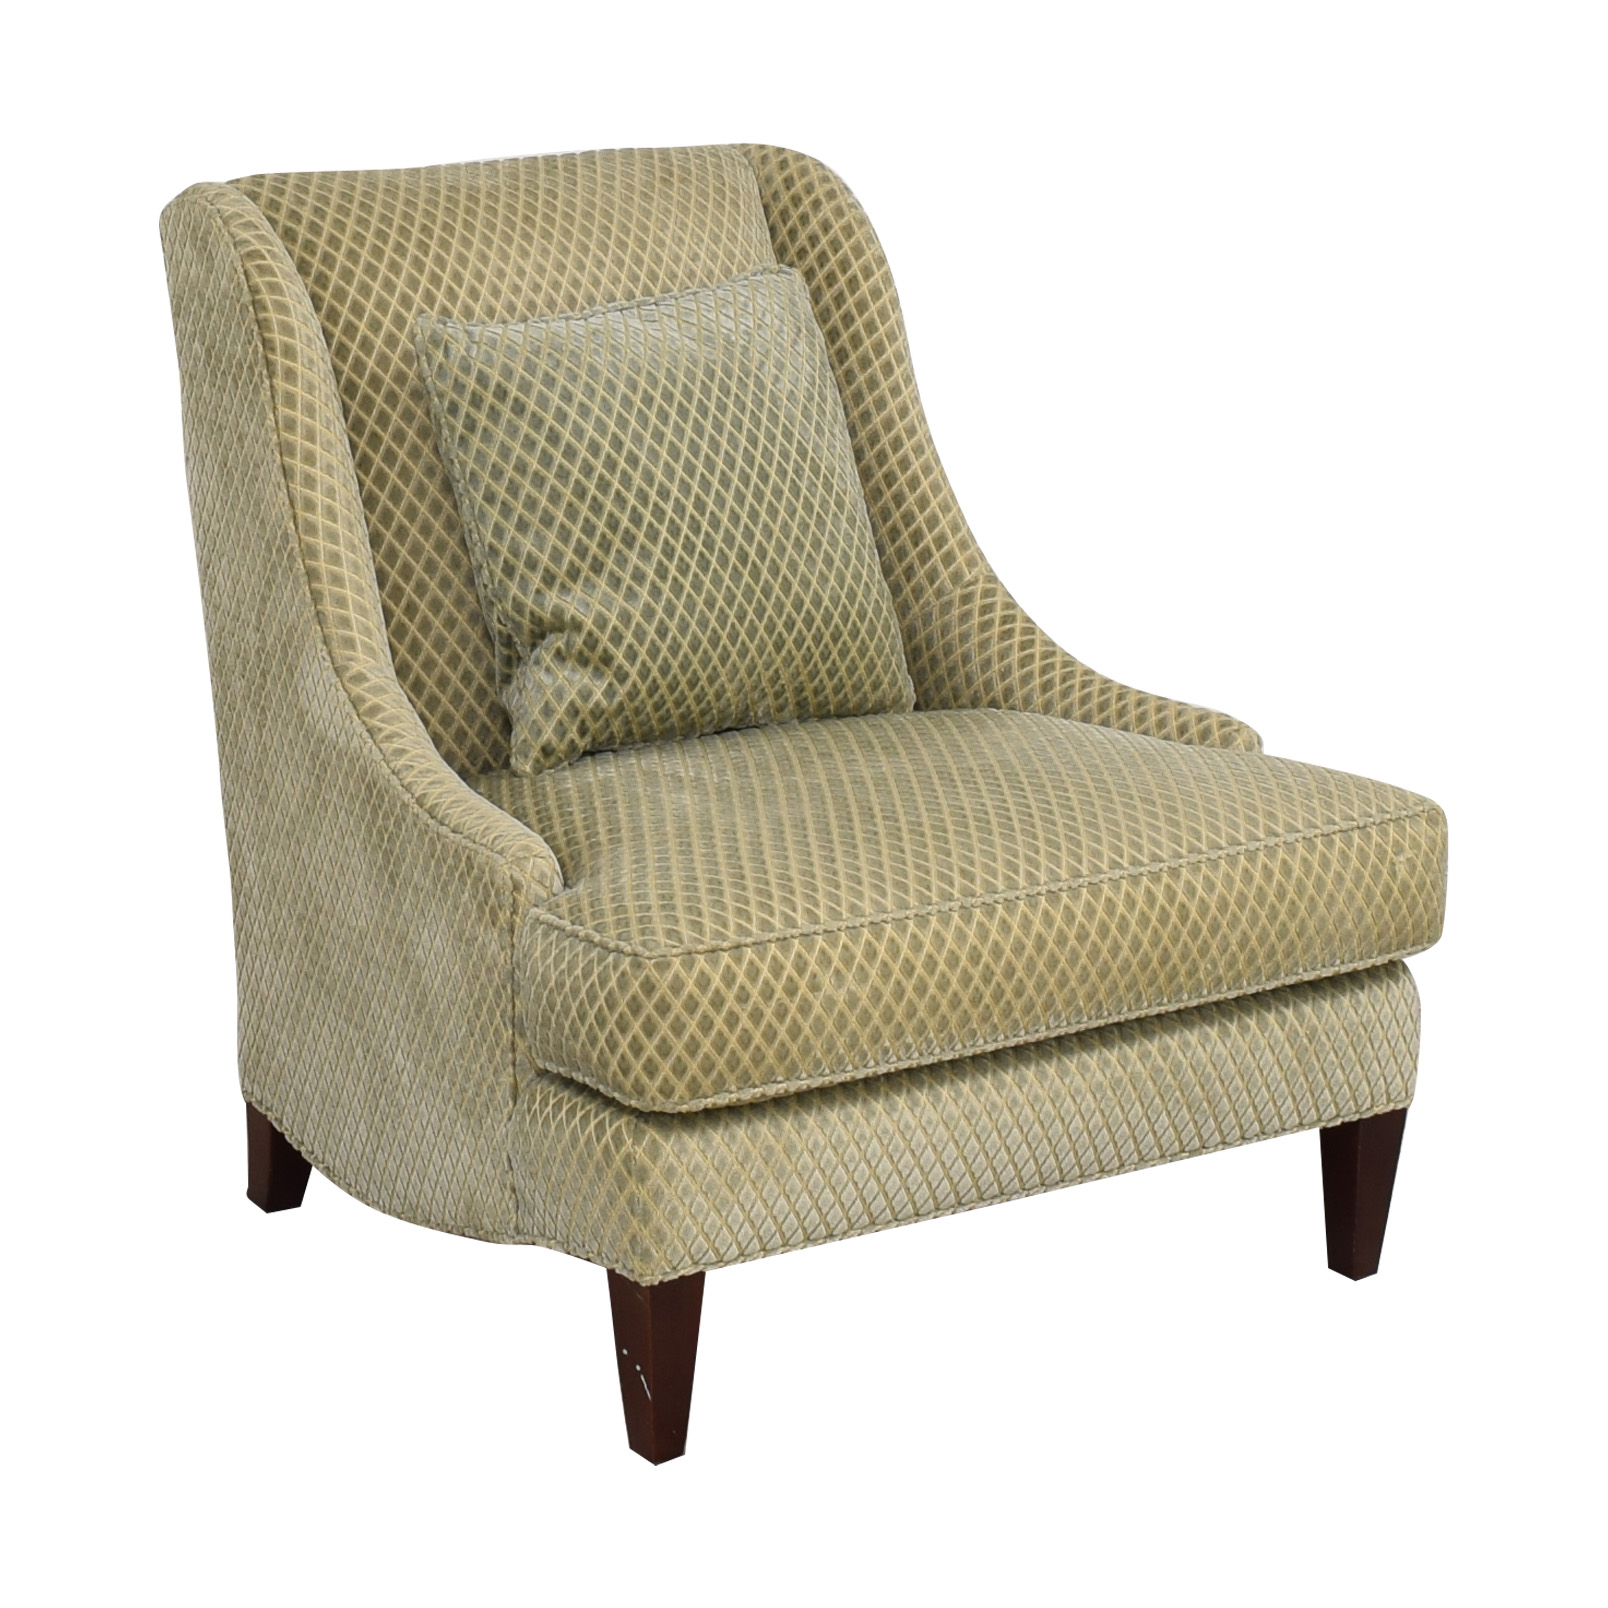 Hickory White Hickory White Armless Chair on sale